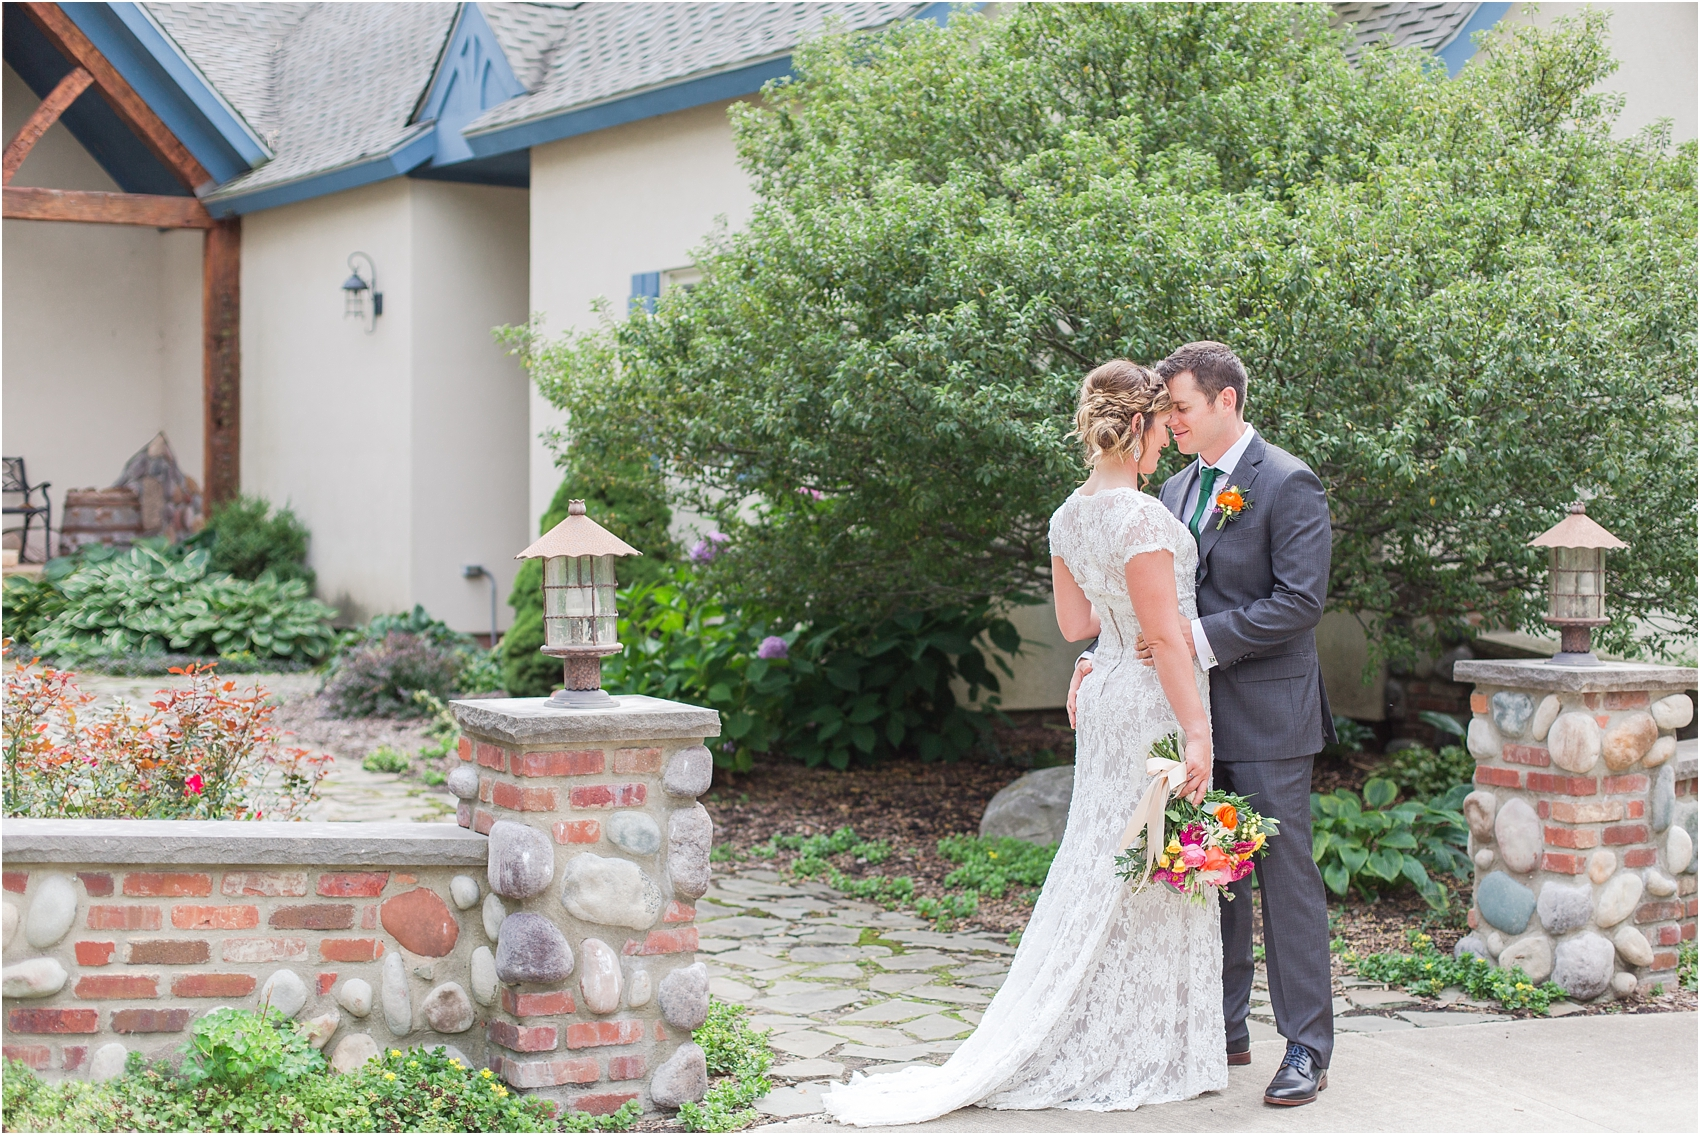 romantic-intimate-backyard-wedding-photos-at-private-estate-in-ann-arbor-mi-by-courtney-carolyn-photography_0051.jpg